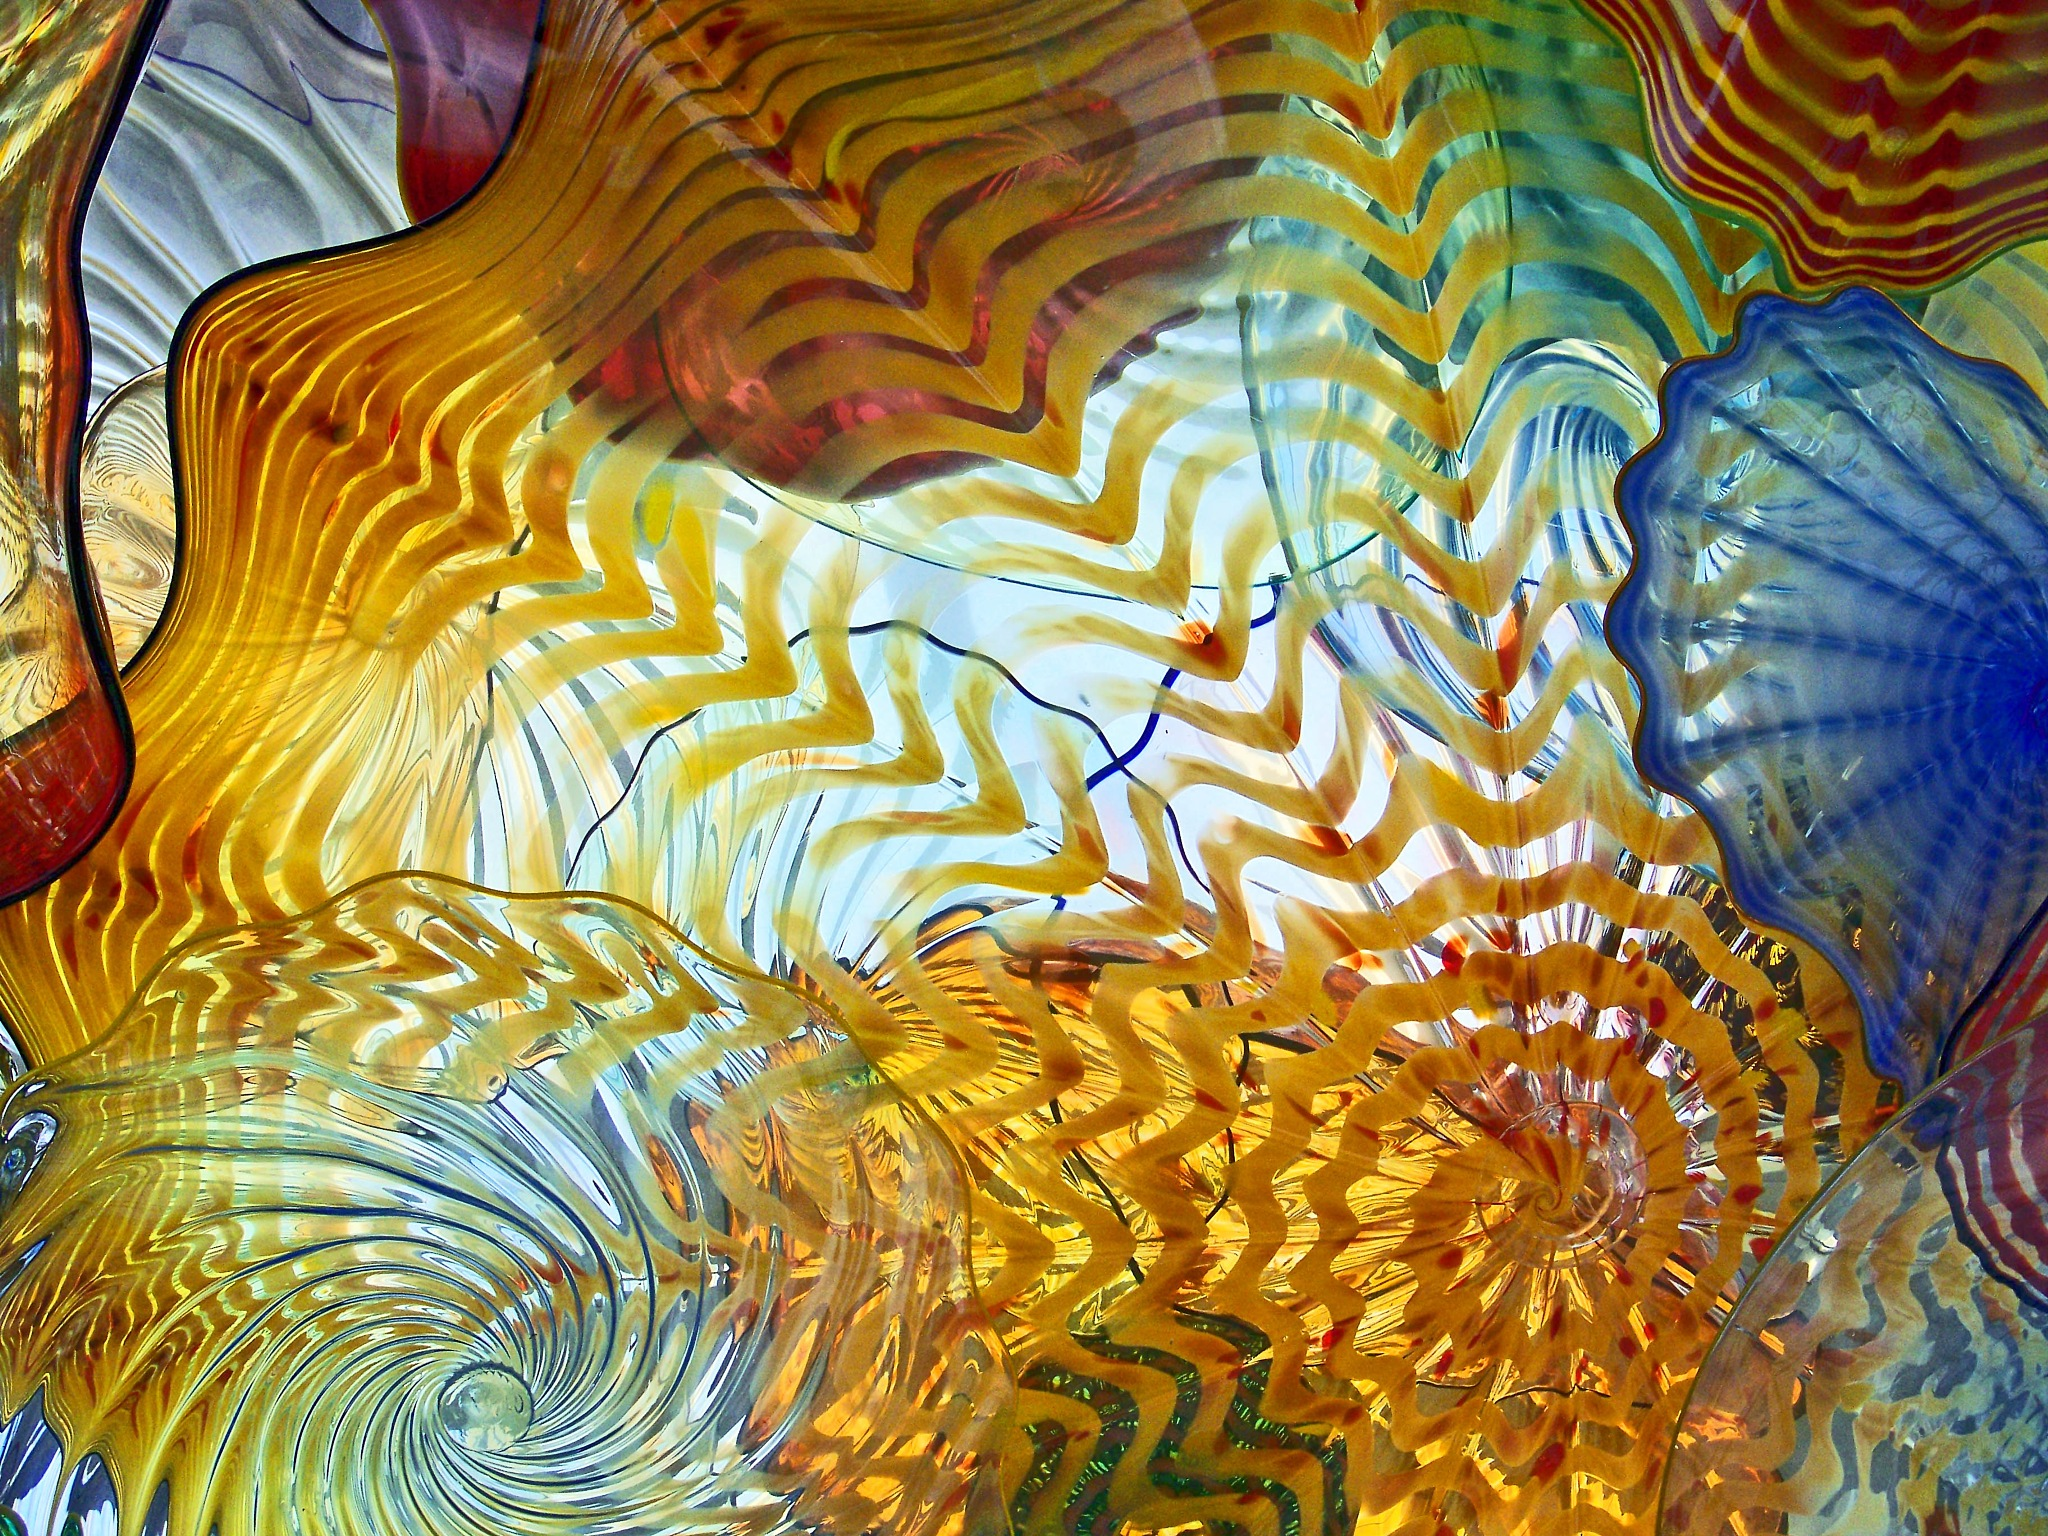 Glass Ceiling 1 by christena.anderson